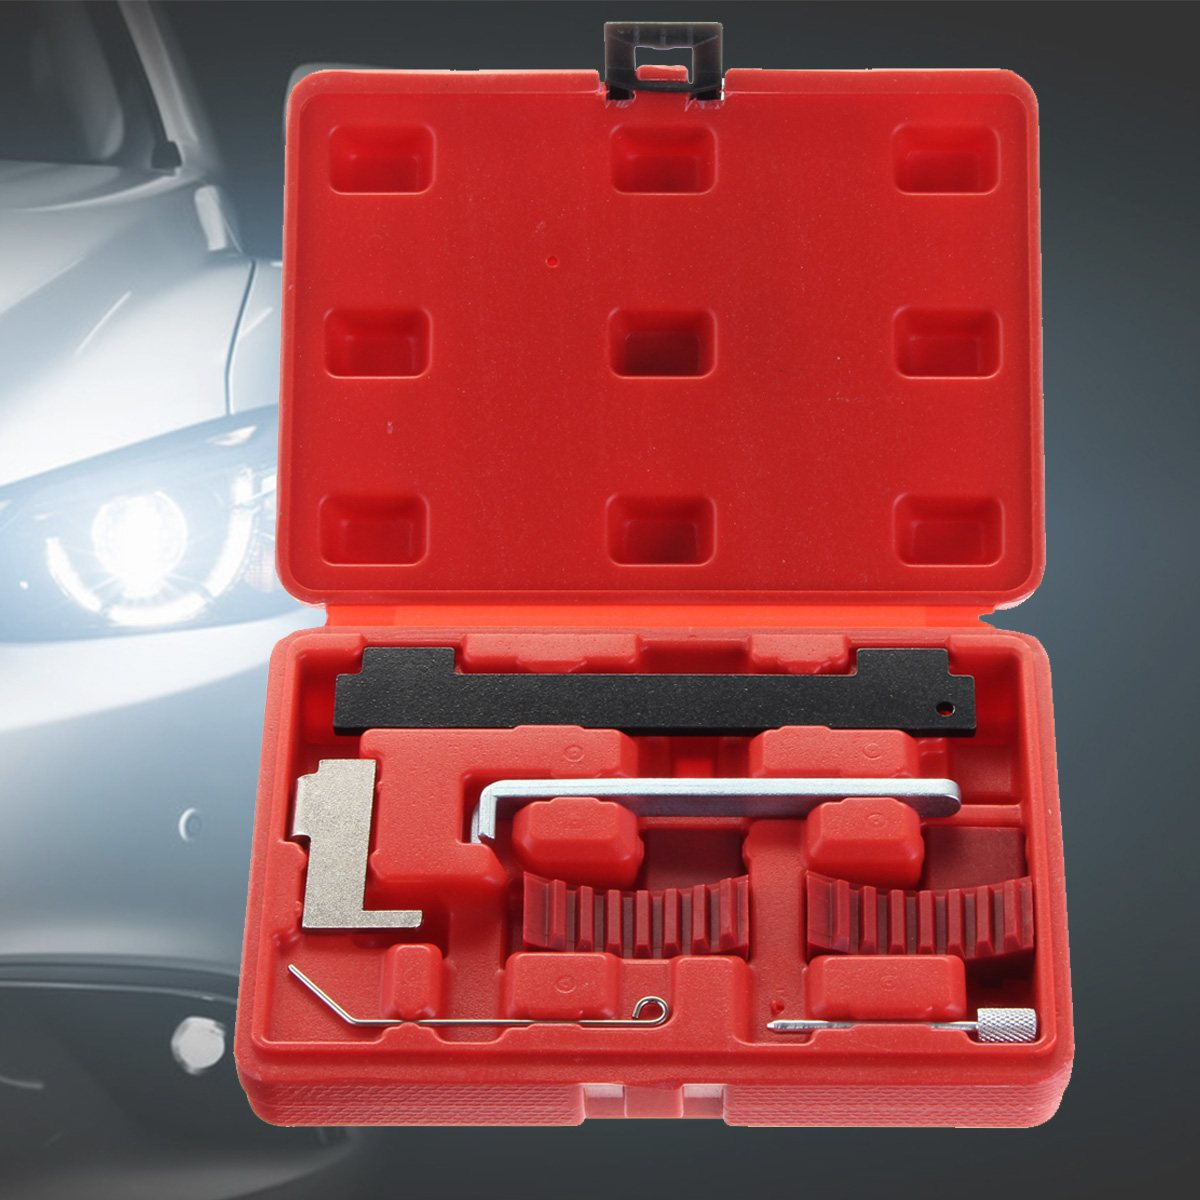 7PCs Engine Timing Tool Kit For Vauxhall Fiat Opel Alfa 1.6 1.8 16V 2003 11 Astra Corsa Vectra